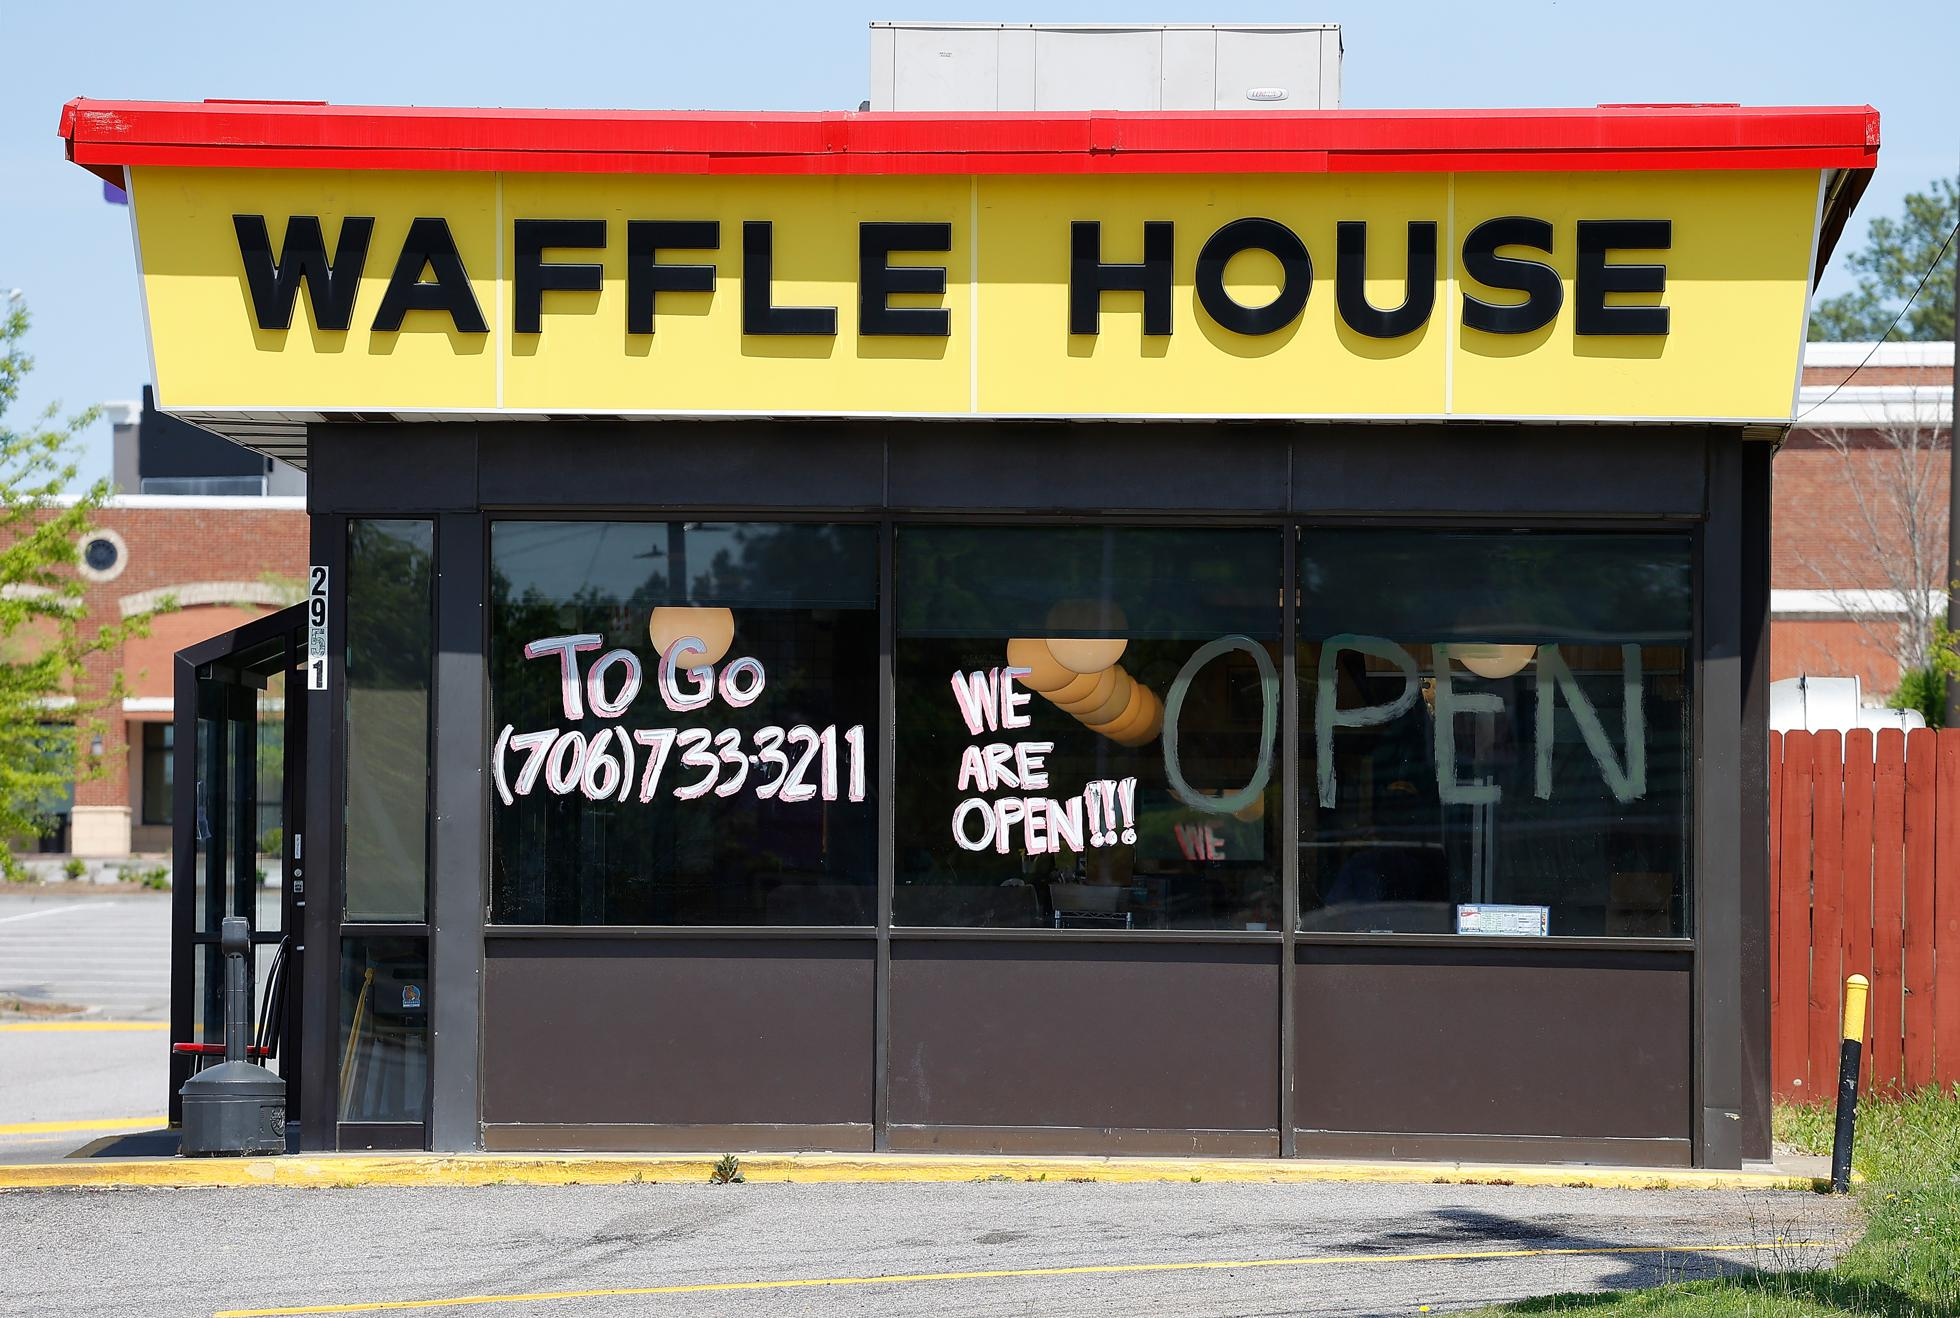 Few Waffle House locations have a drive-thru, which made the transition to takeout orders more challenging.